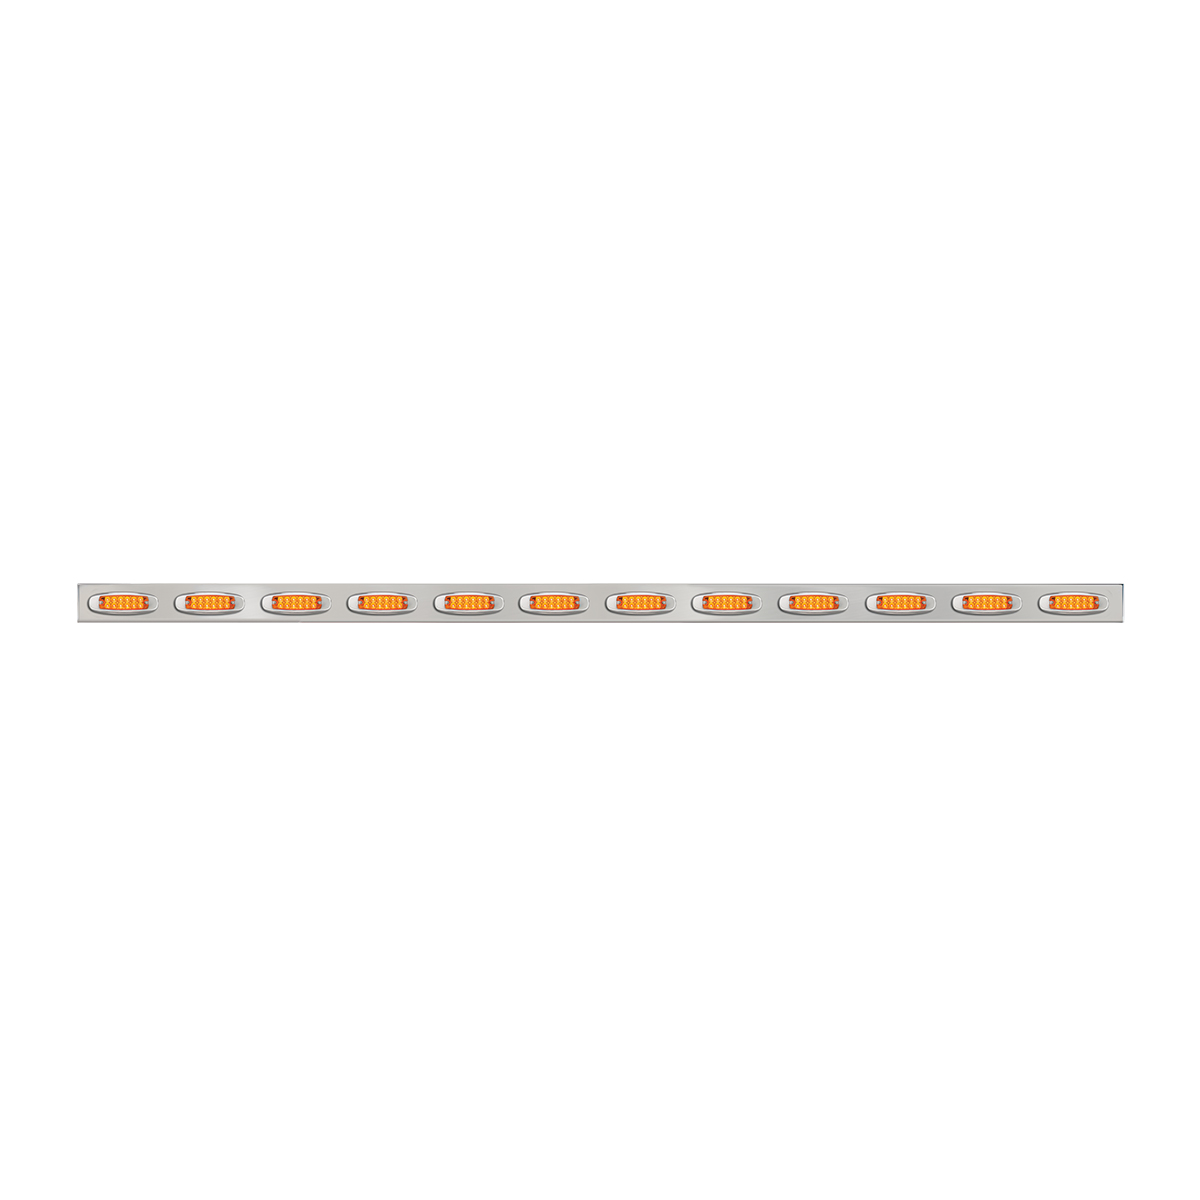 #81726/#81727 Front Bumper Ultra Thin Matrix 12-LED Marker Light Bar